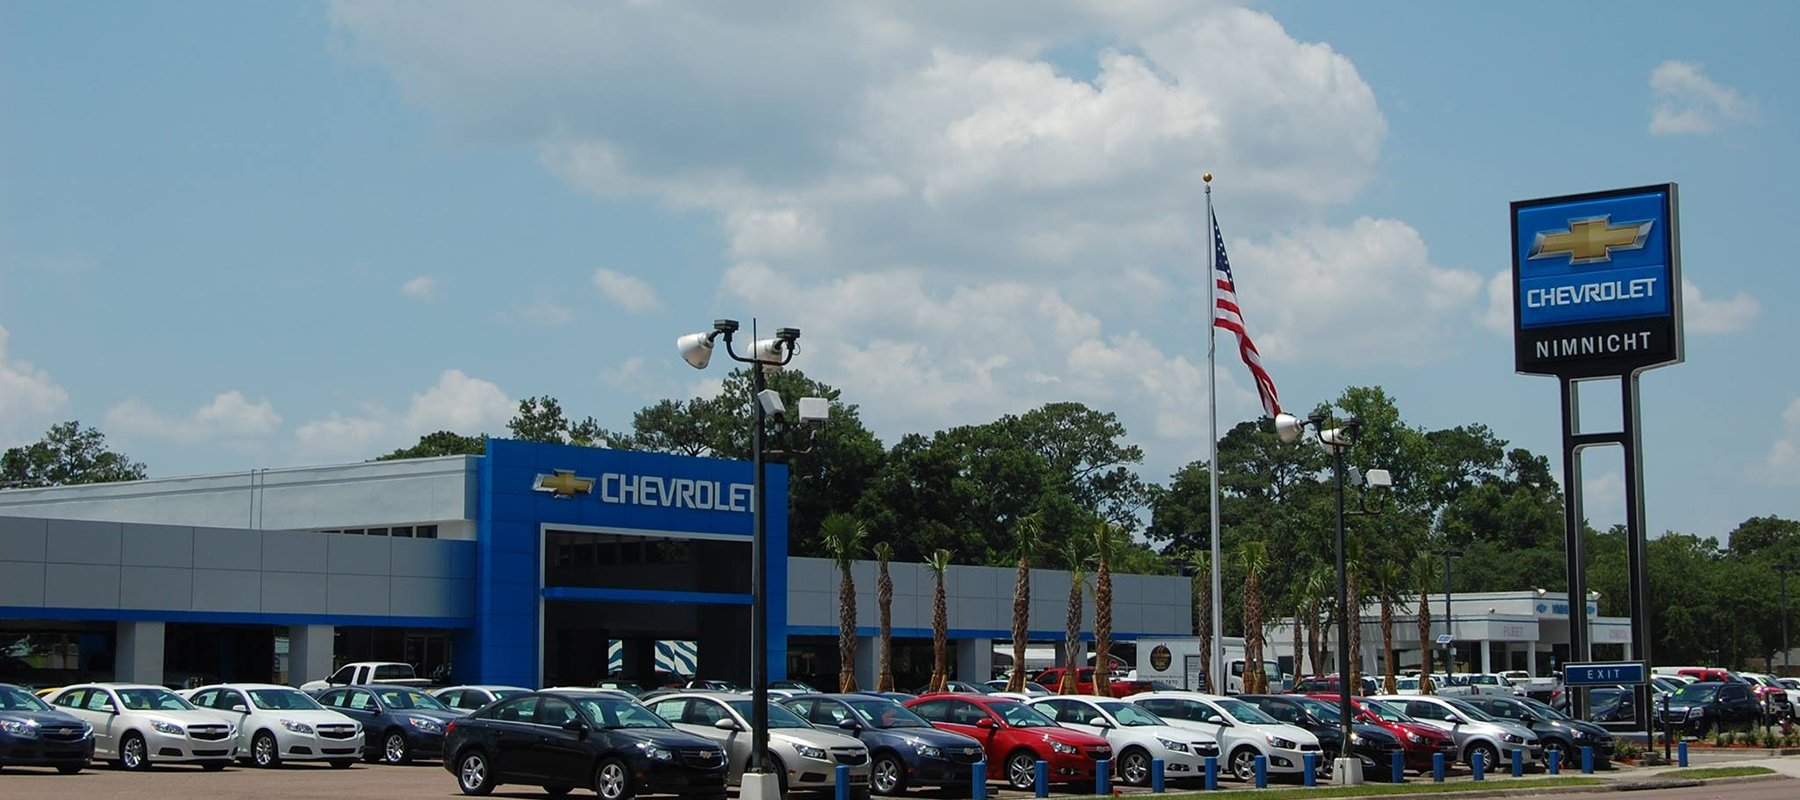 Nimnicht Chevy Dealership